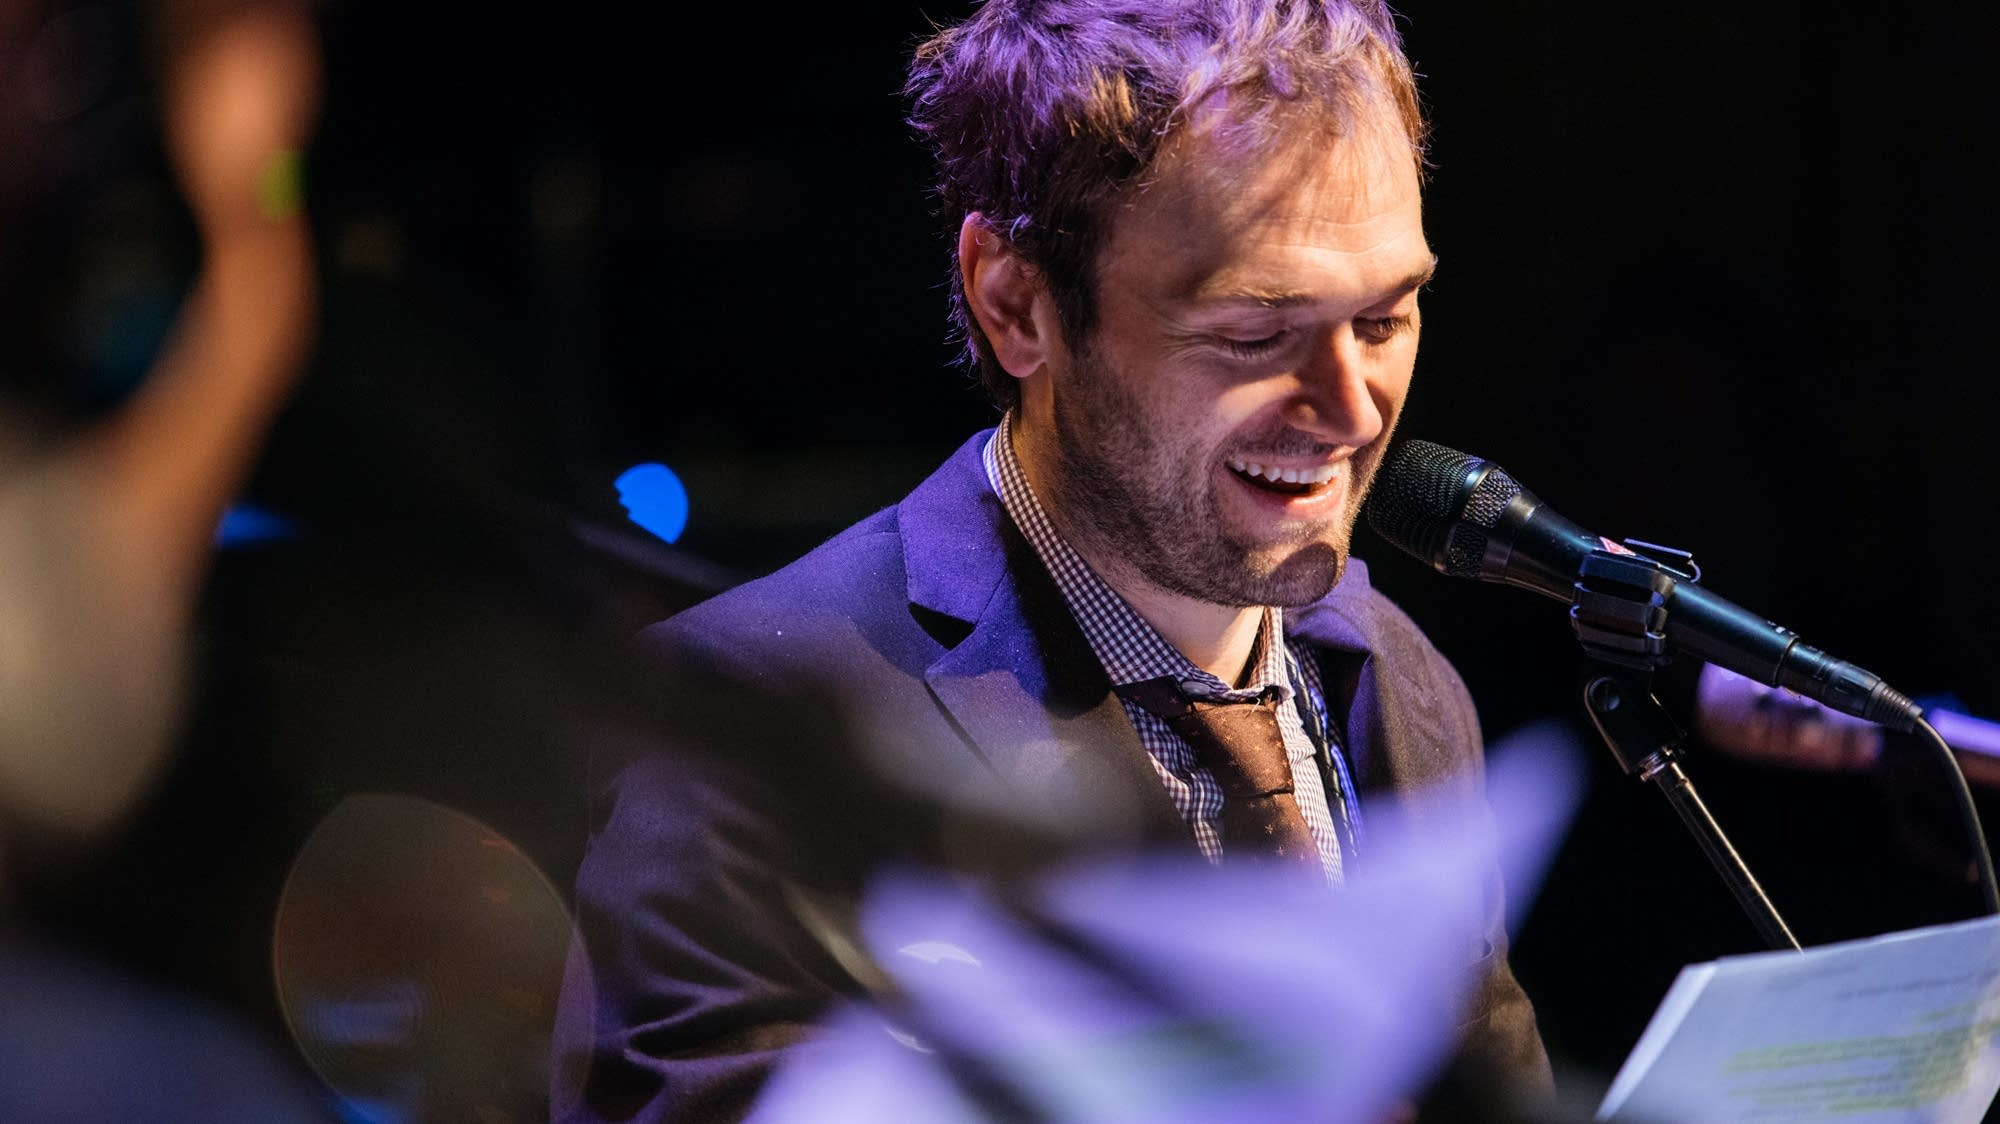 For Chris Thile hosting Prairie Home is opportunity of a lifetime